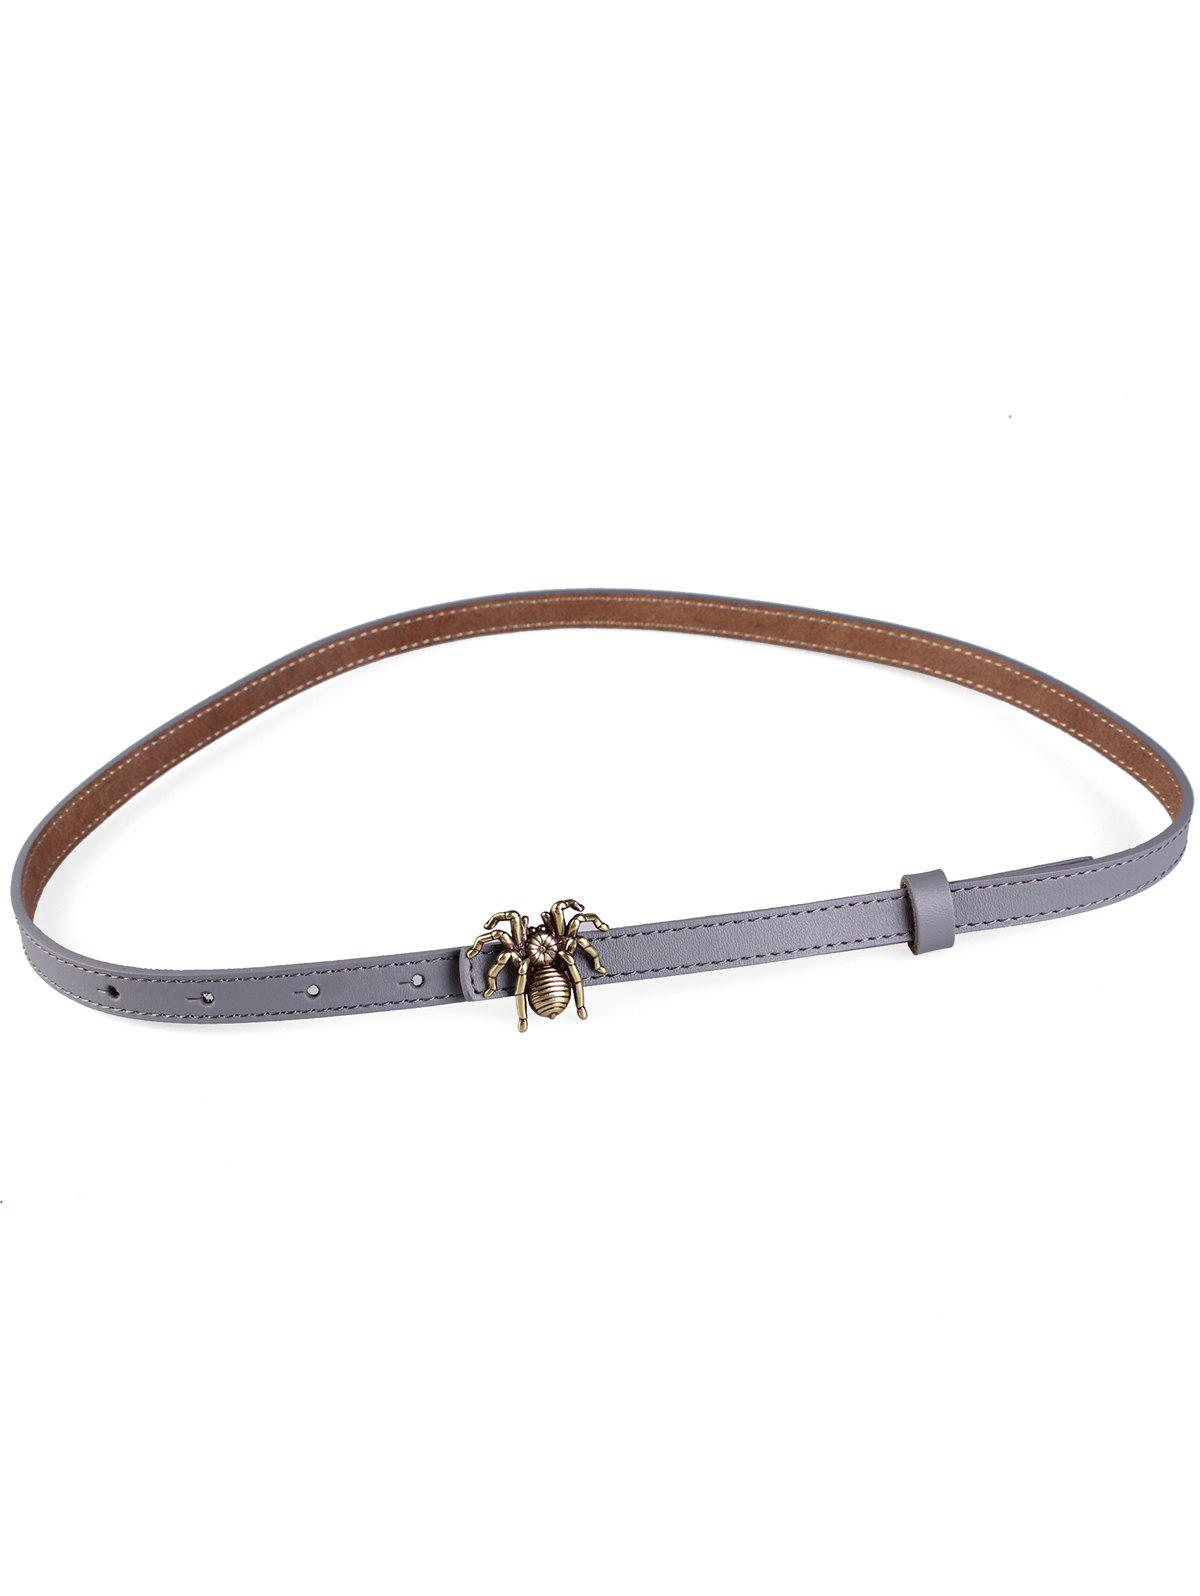 Shops Unique Spider Buckle Faux Leather Skinny Belt